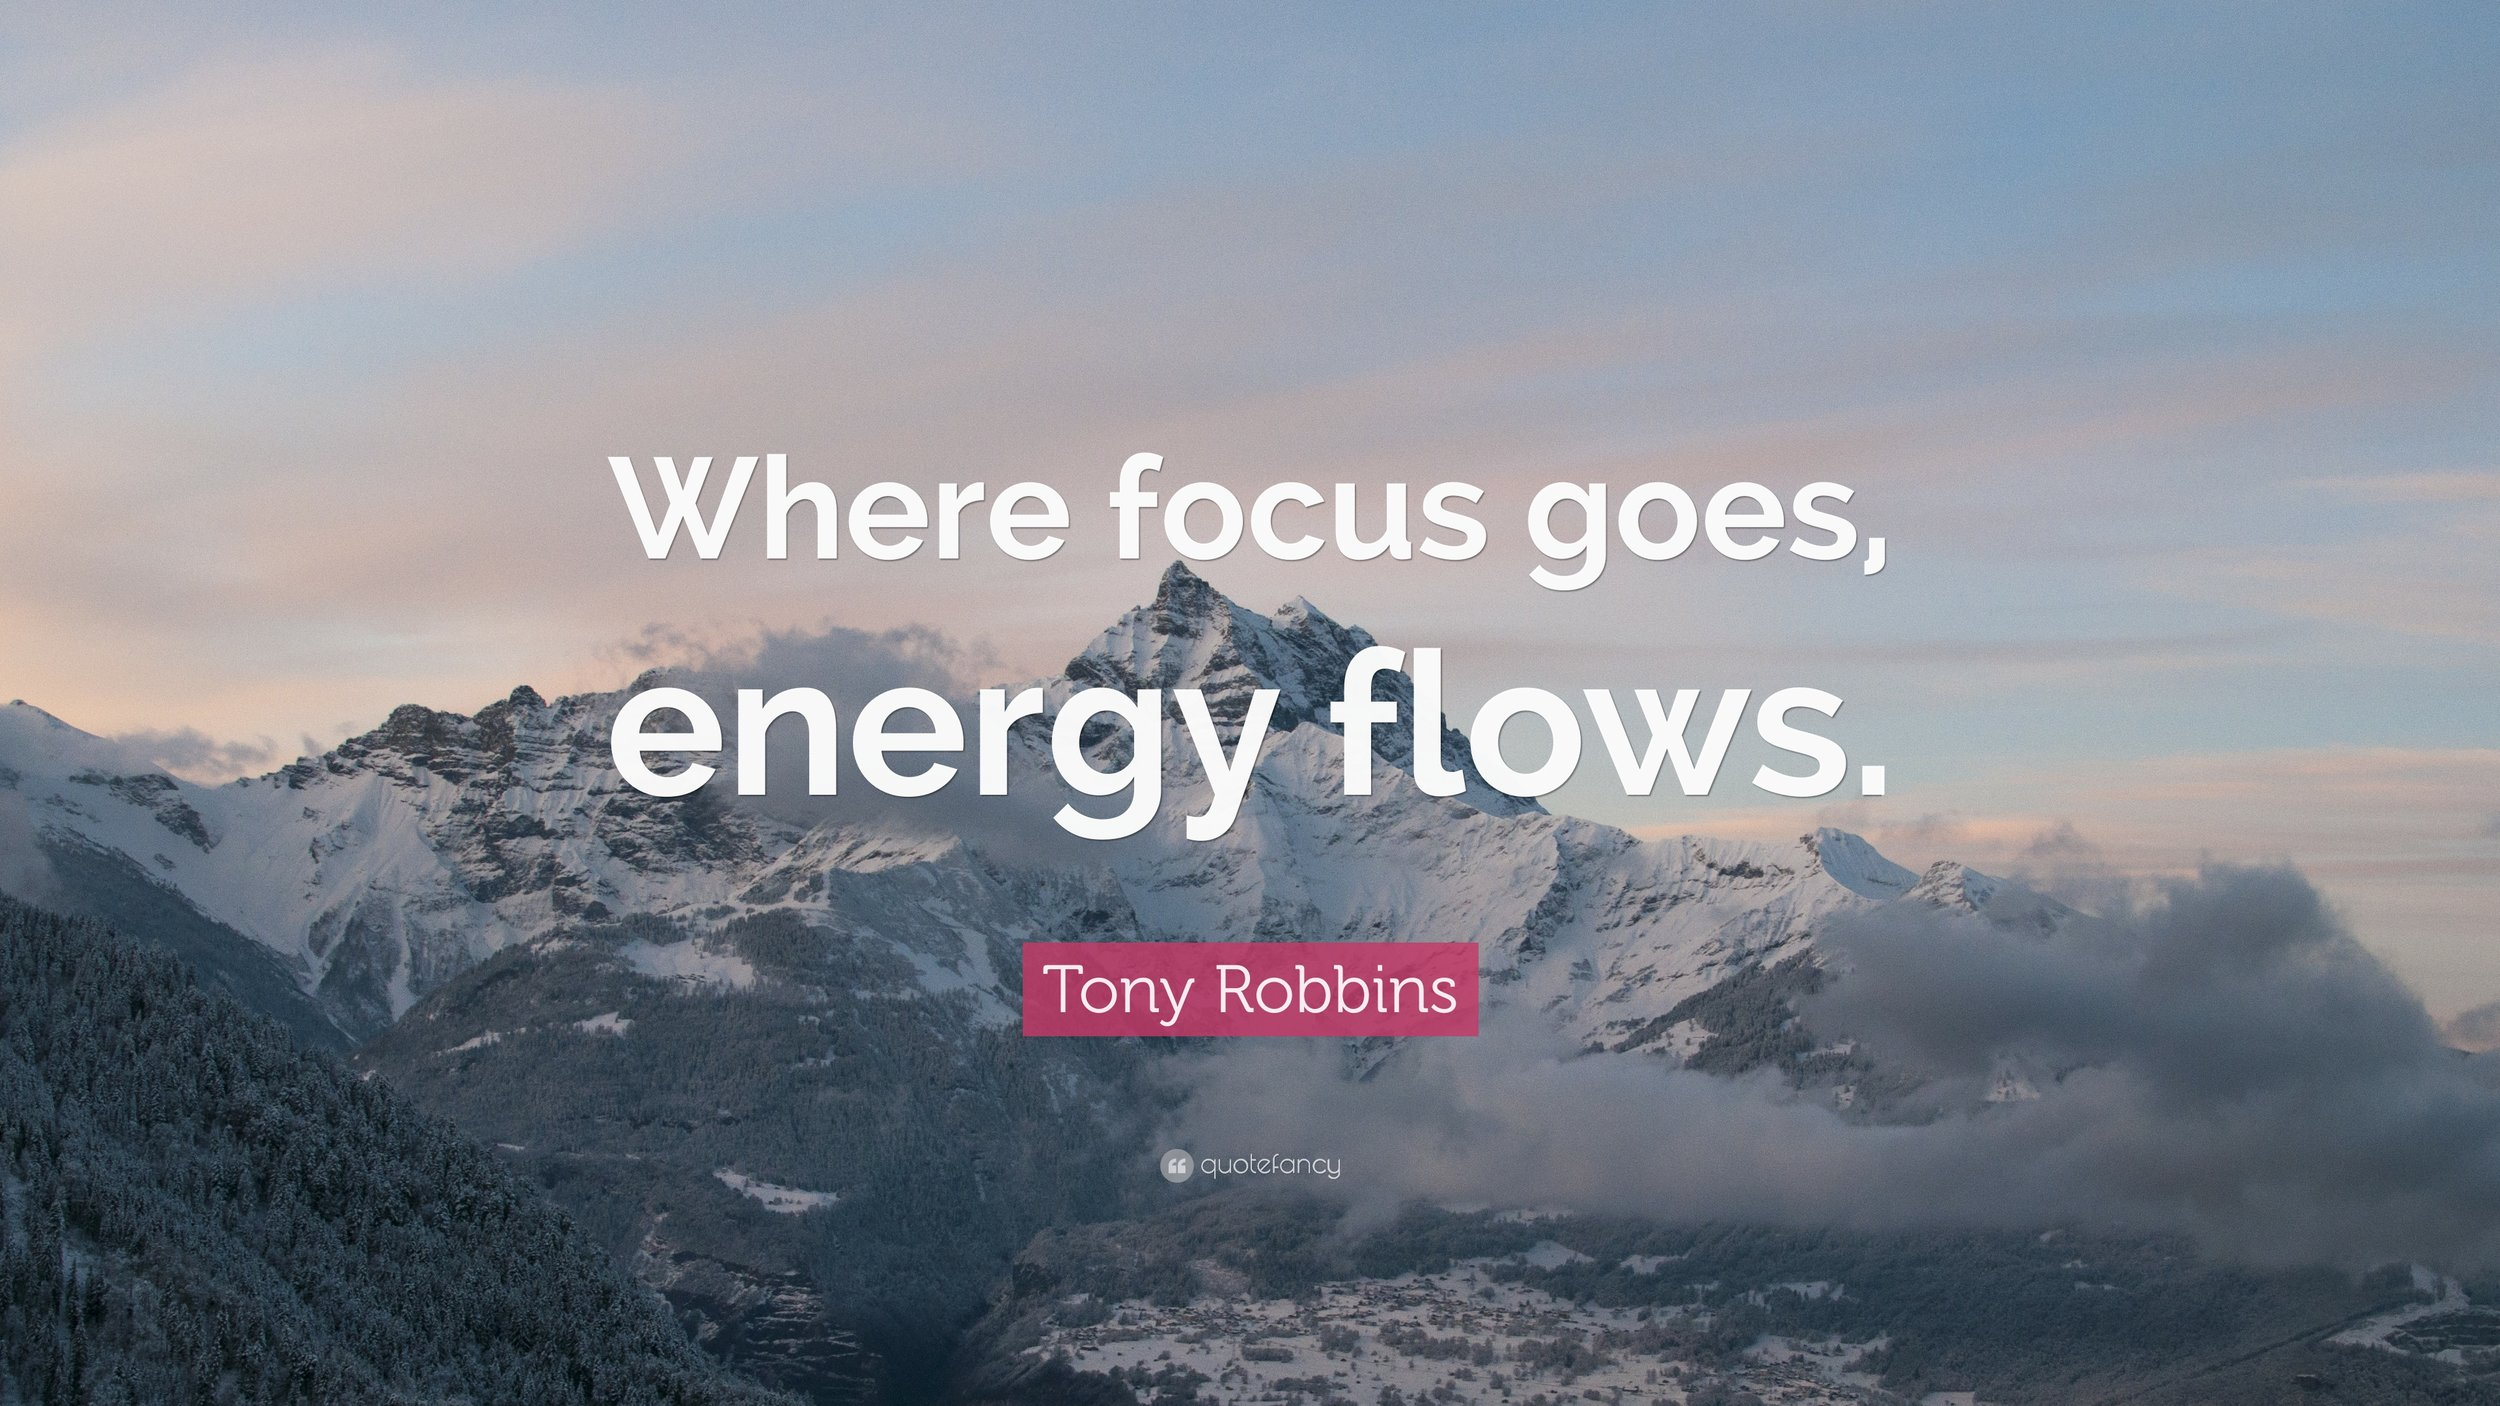 237568-Tony-Robbins-Quote-Where-focus-goes-energy-flows.jpg